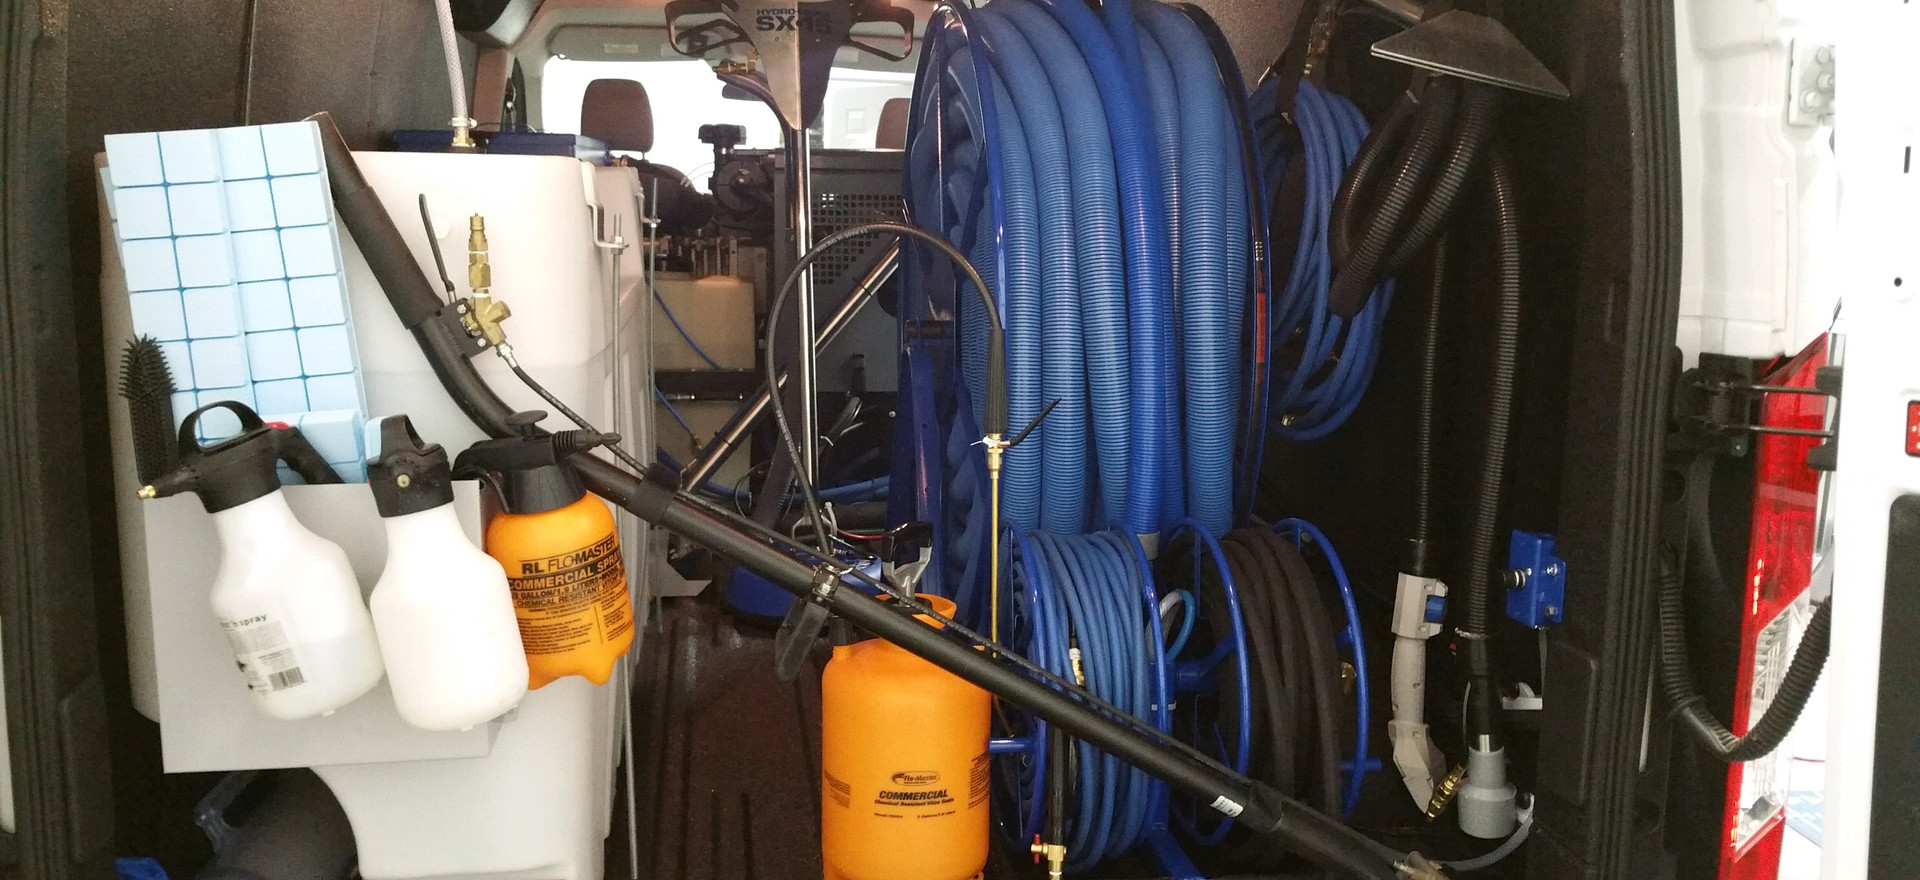 Steam Cleaning Hose & Equipment